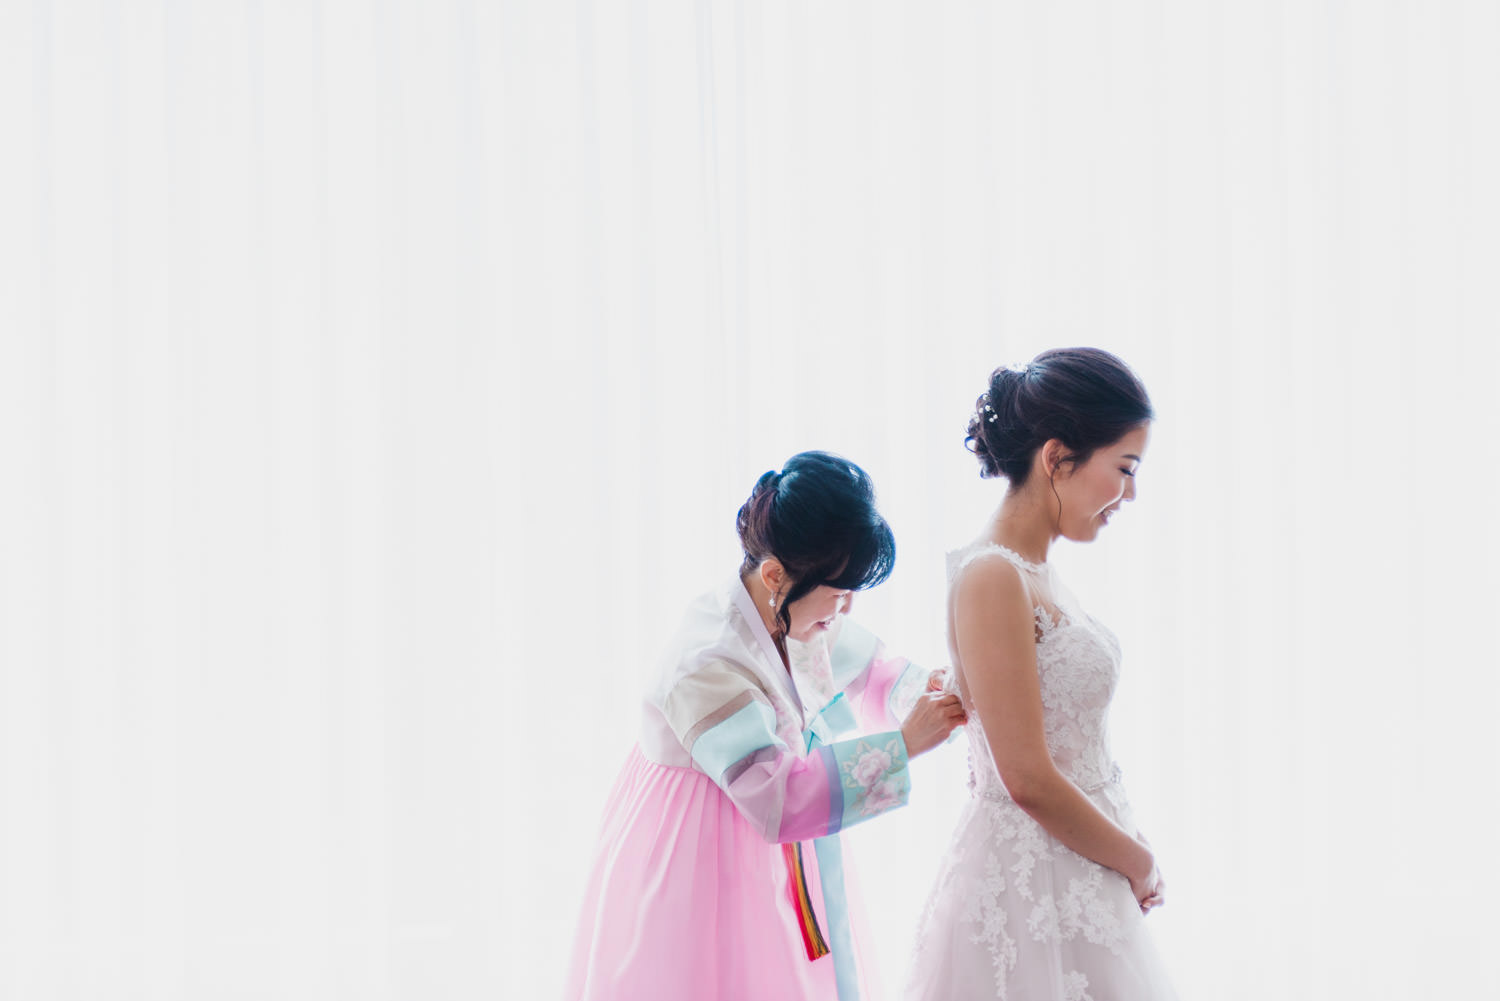 Mom helping bride with her wedding dress at Shangri-La Hotel in Toronto